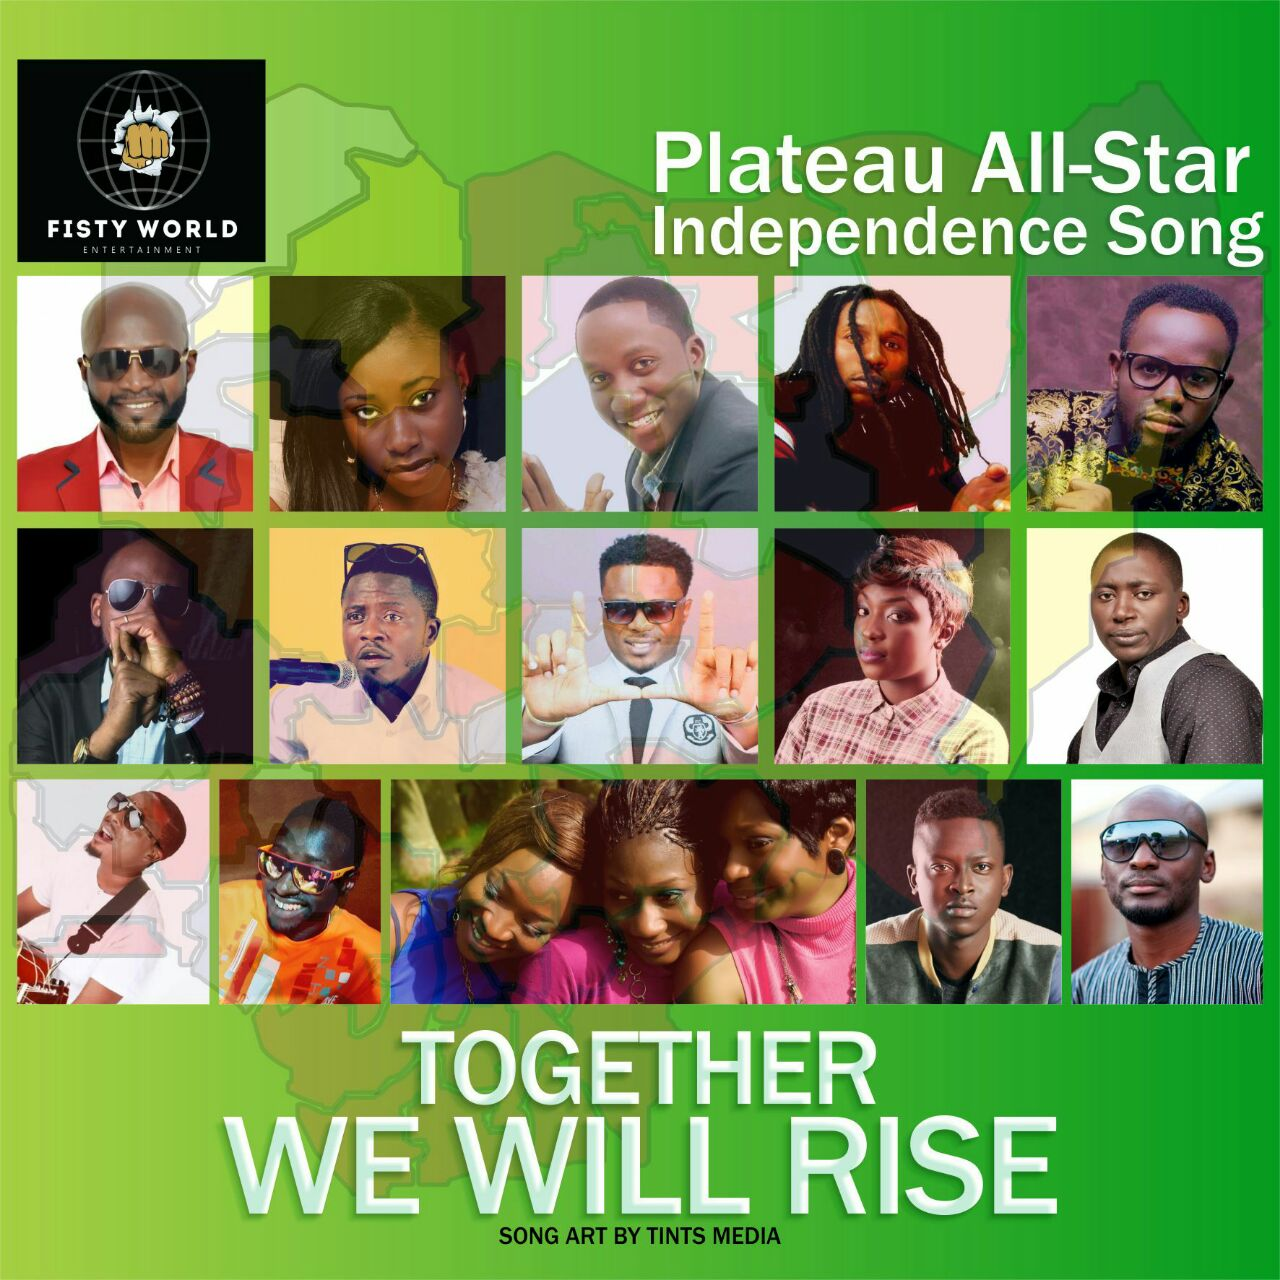 TOGETHER' SPECIAL NIGERIA INDEPENDENCE SONG BY PLATEAU ALL